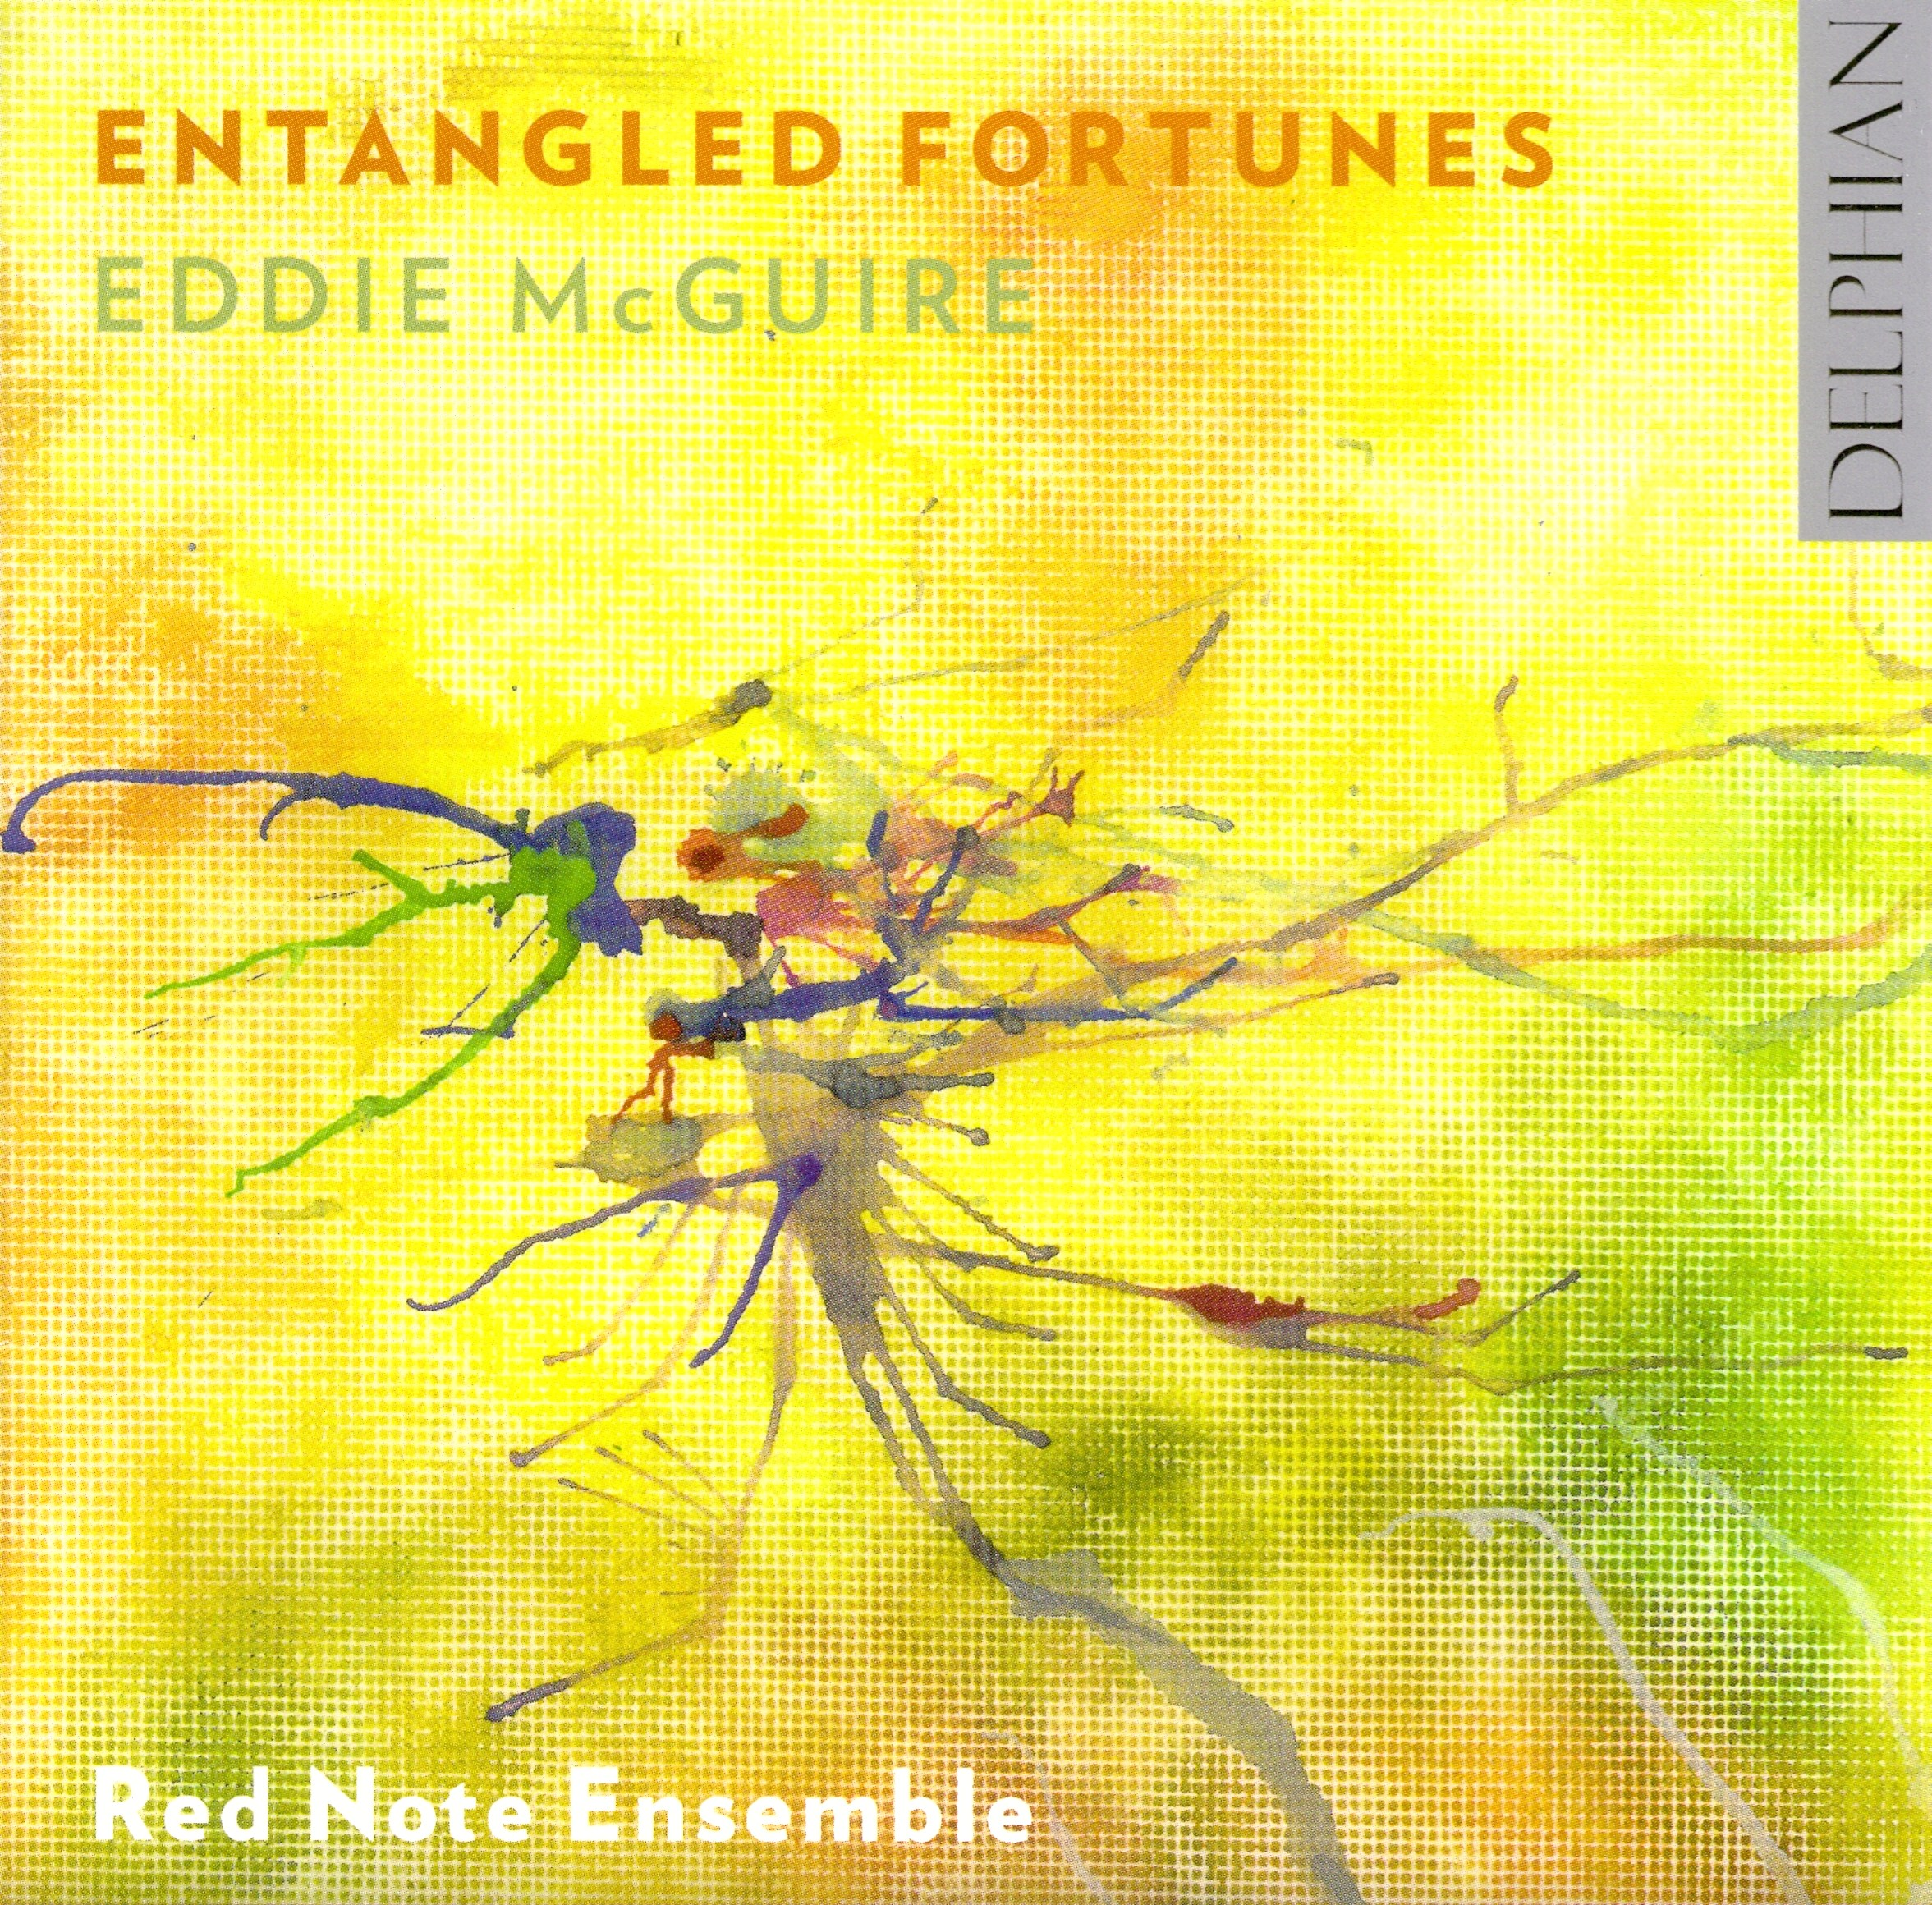 eddie mcguire cd cover entangled fortunesjpg